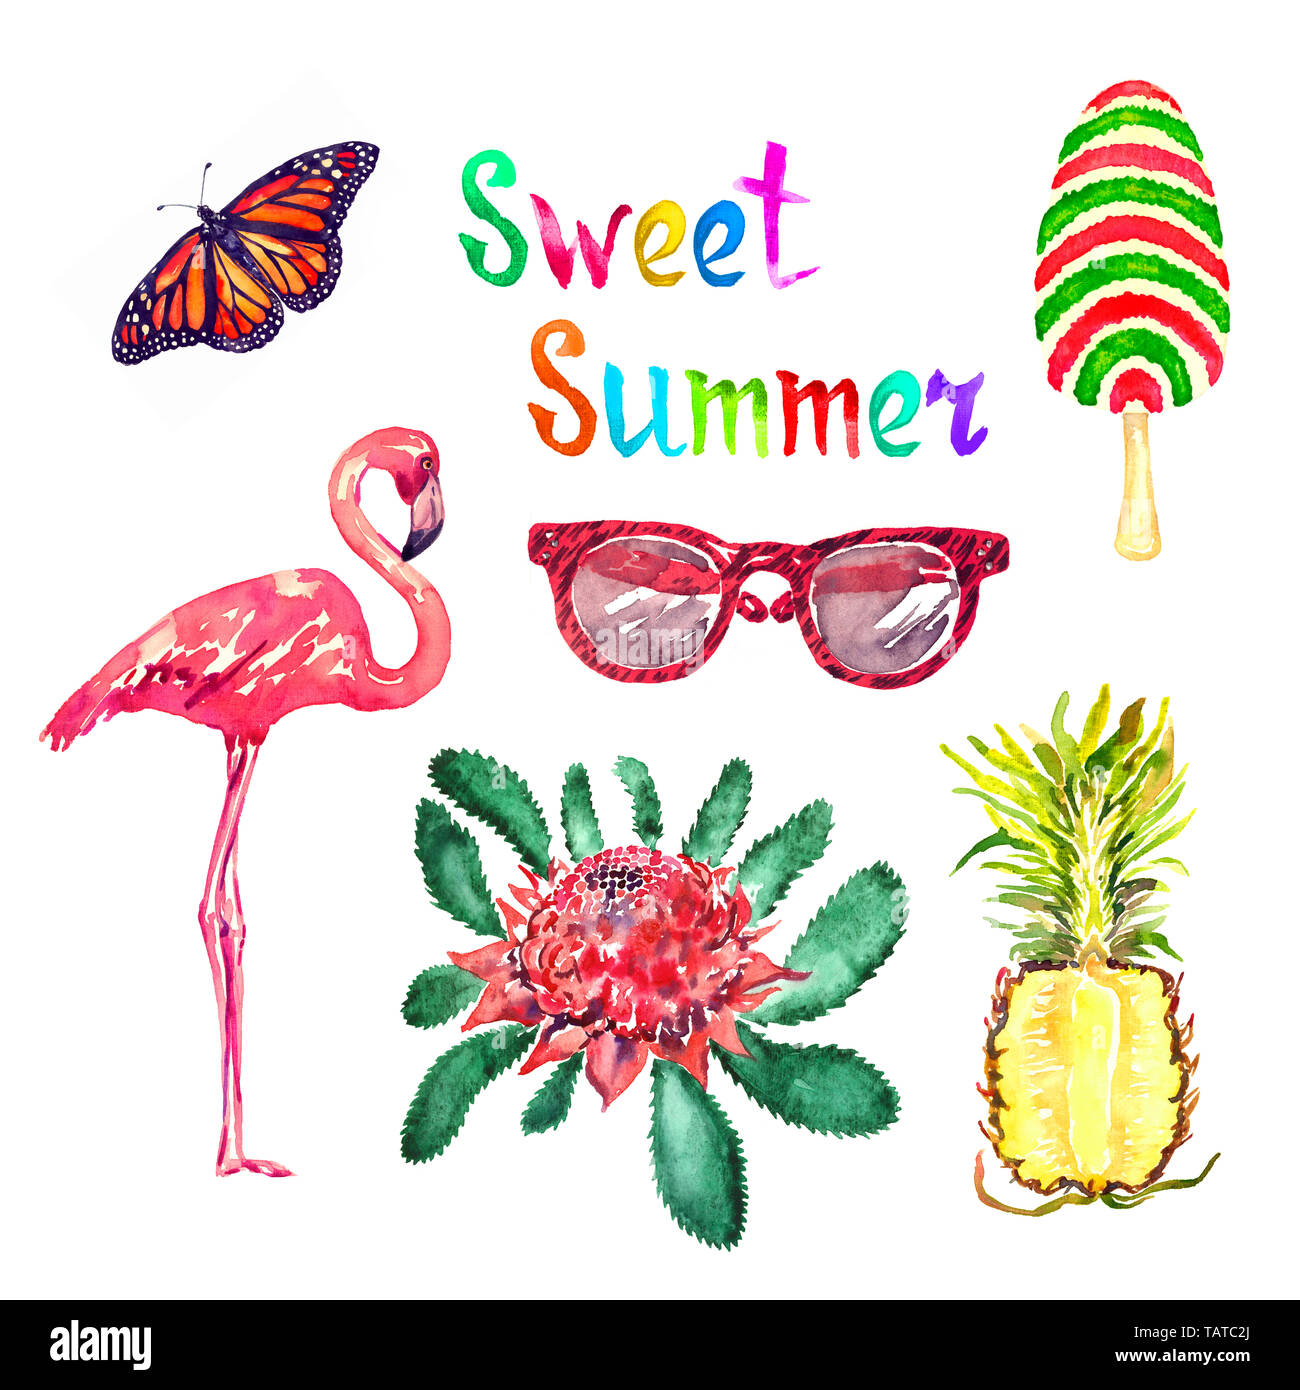 Sweet summer watercolor isolated illustration set, Monarch butterfly, glasses, striped ice cream, flamingo, New South Wales waratah (Telopea speciosis - Stock Image